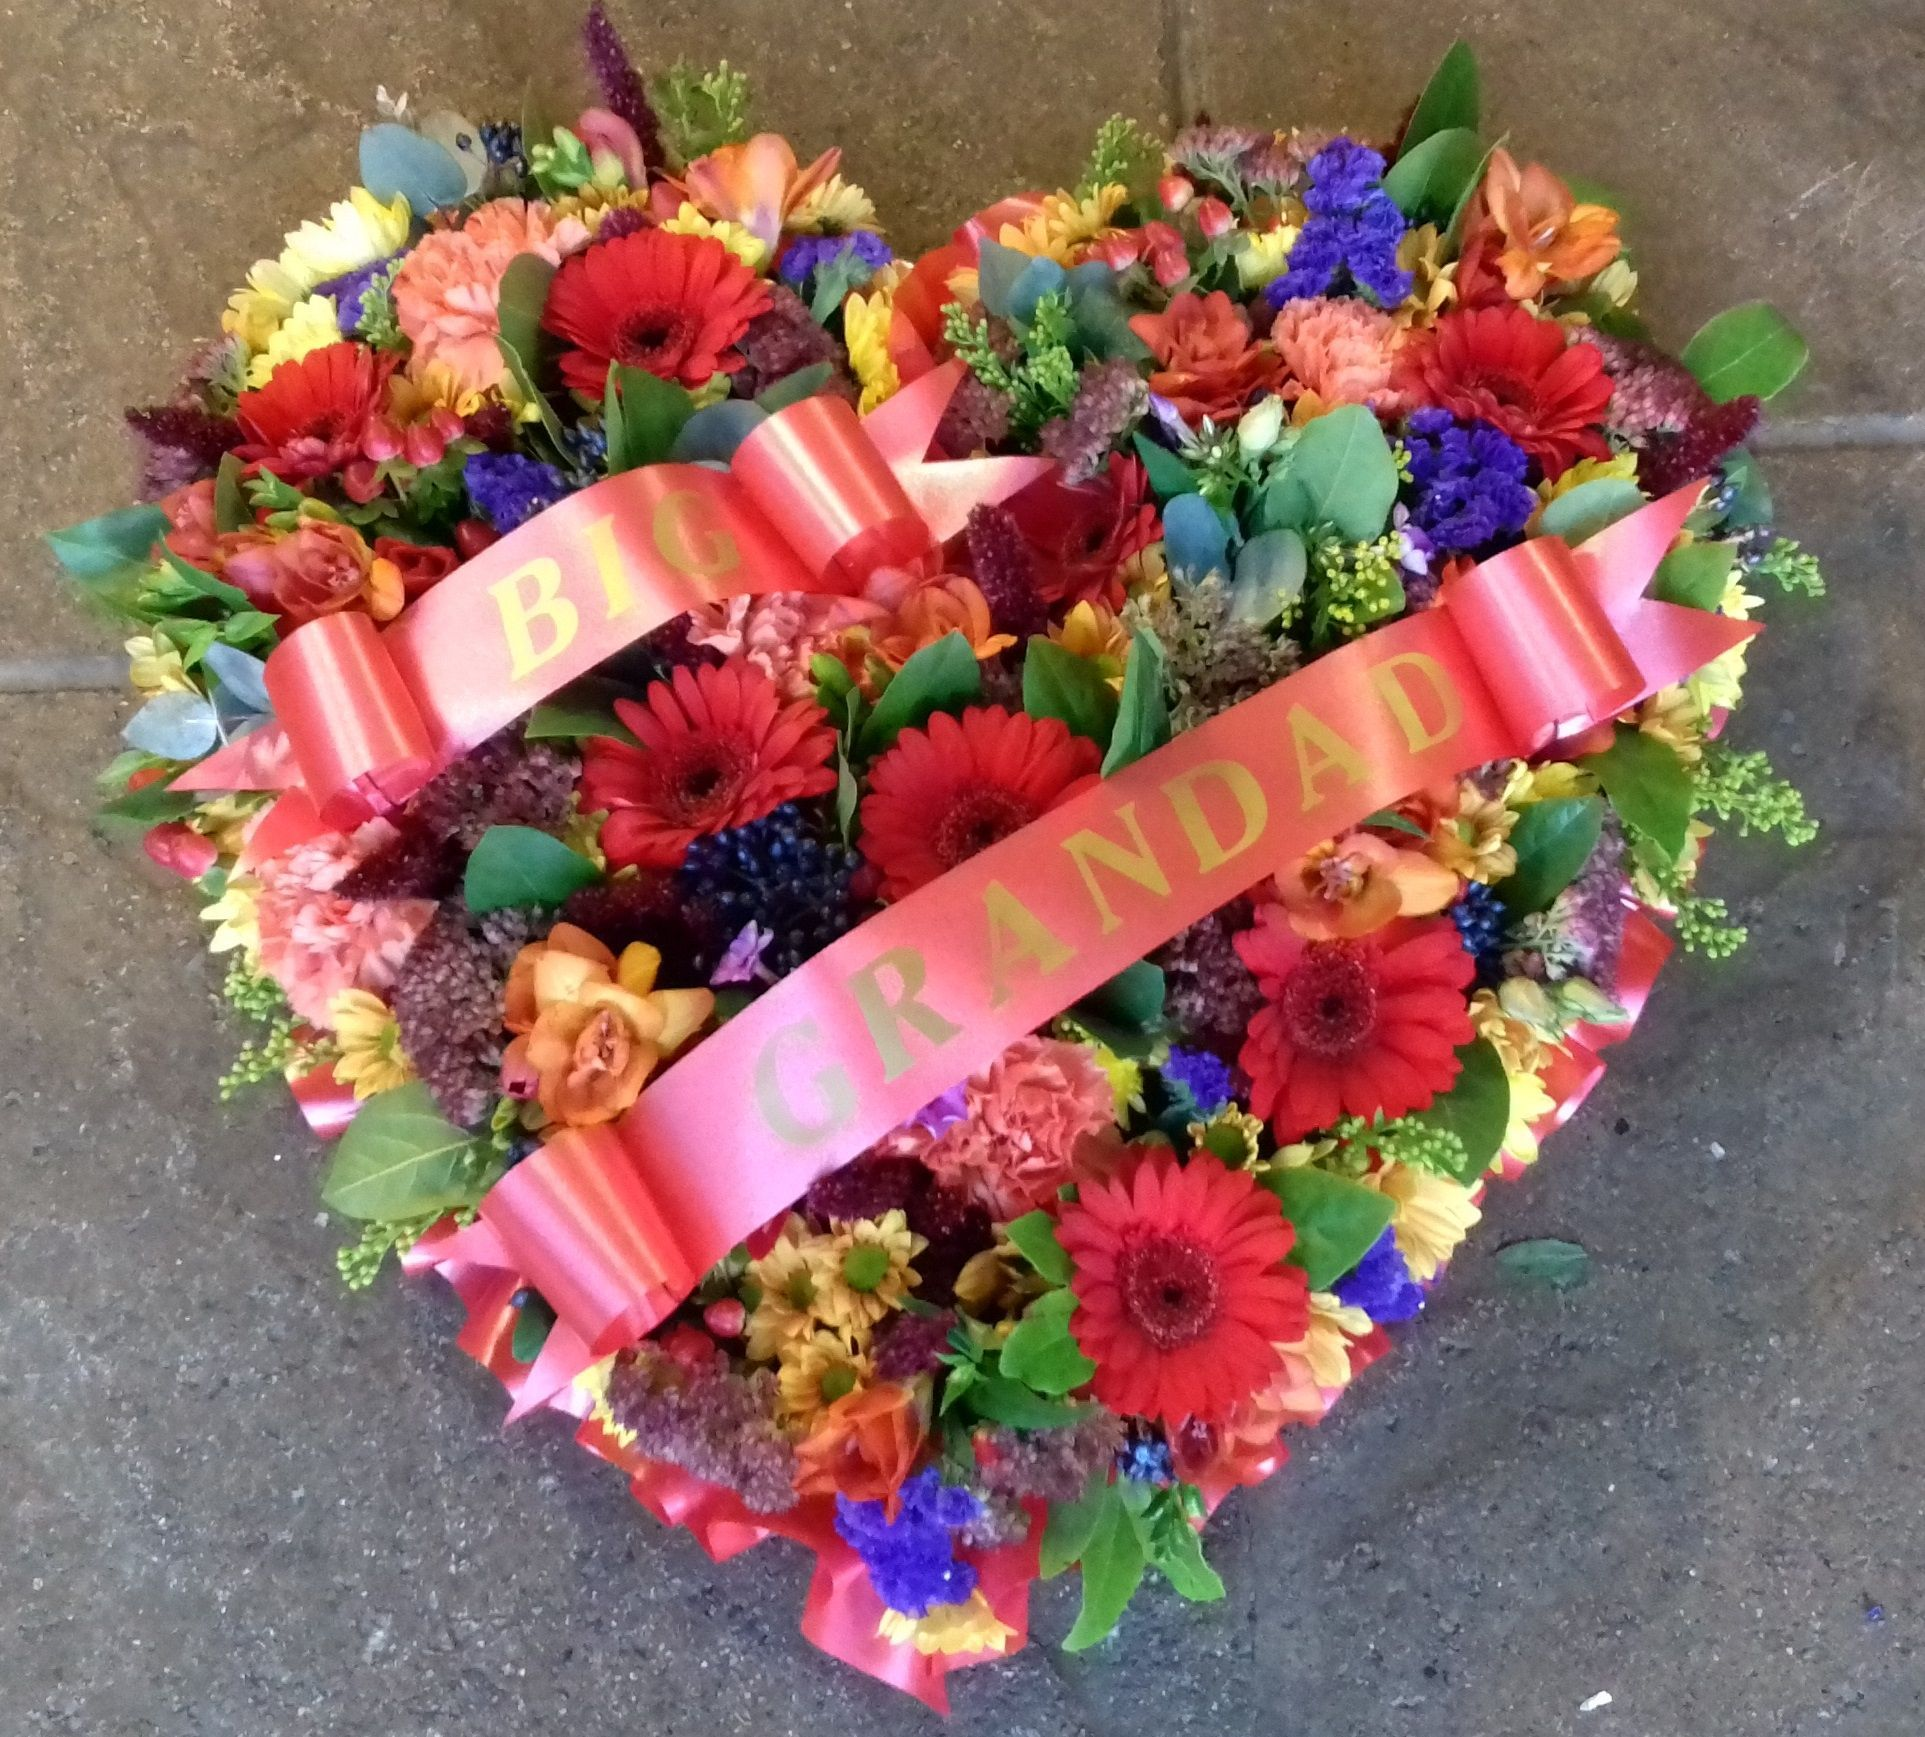 Funeral flowers floralcraft heart flowers funeral tribute izmirmasajfo